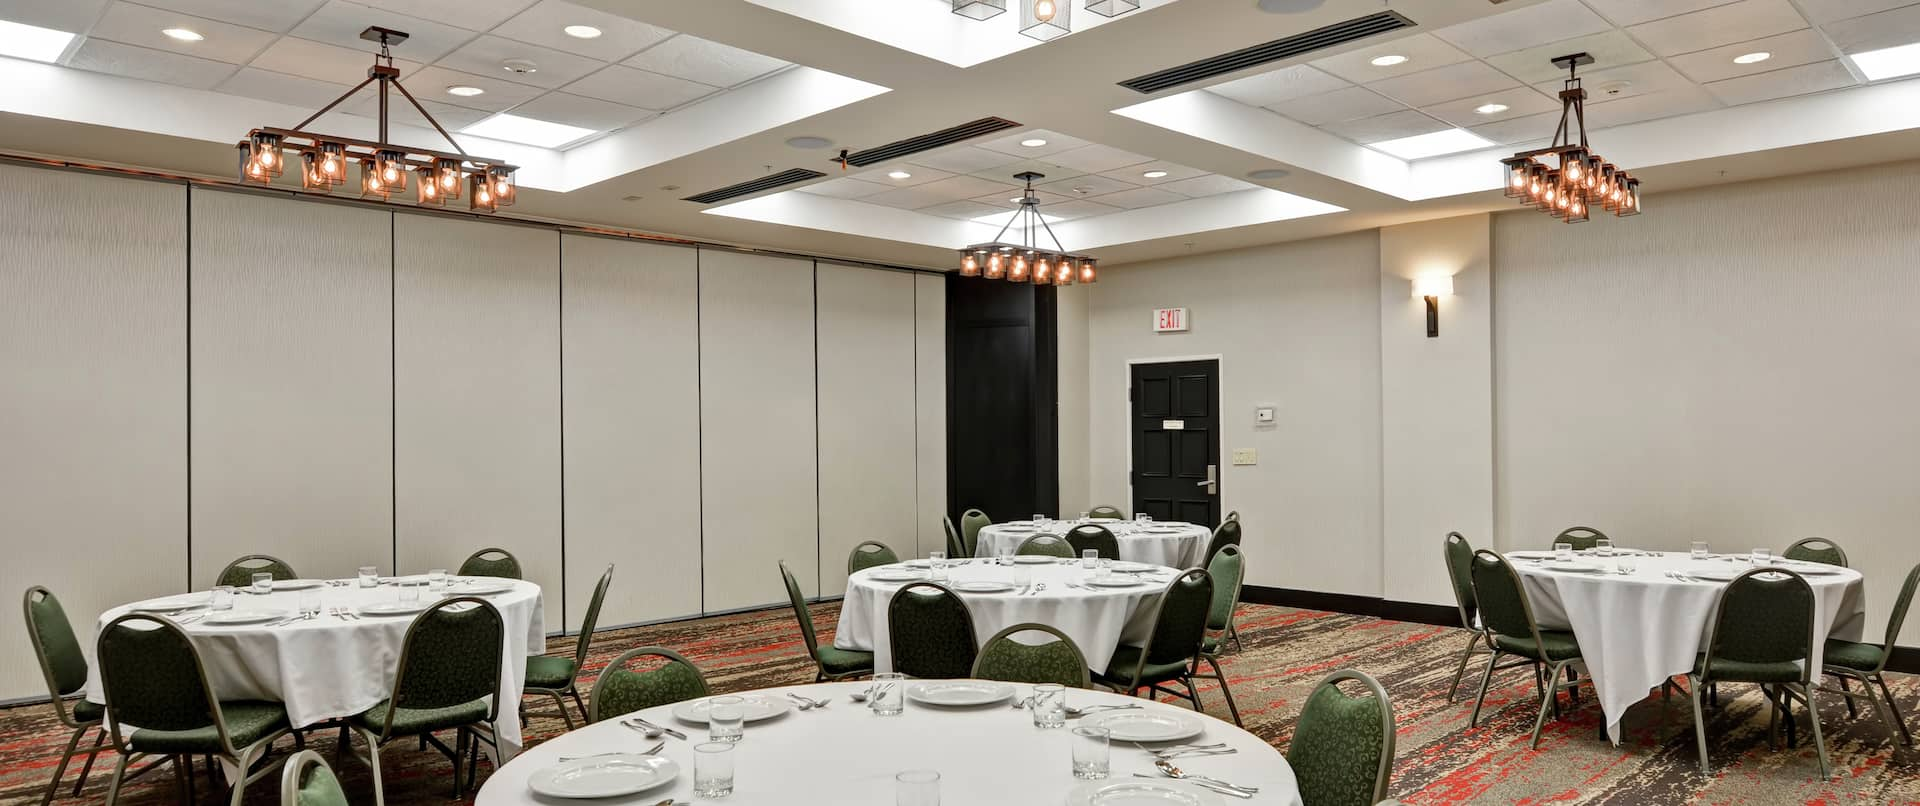 Chairs and Round Banquet Tables in Meeting Room